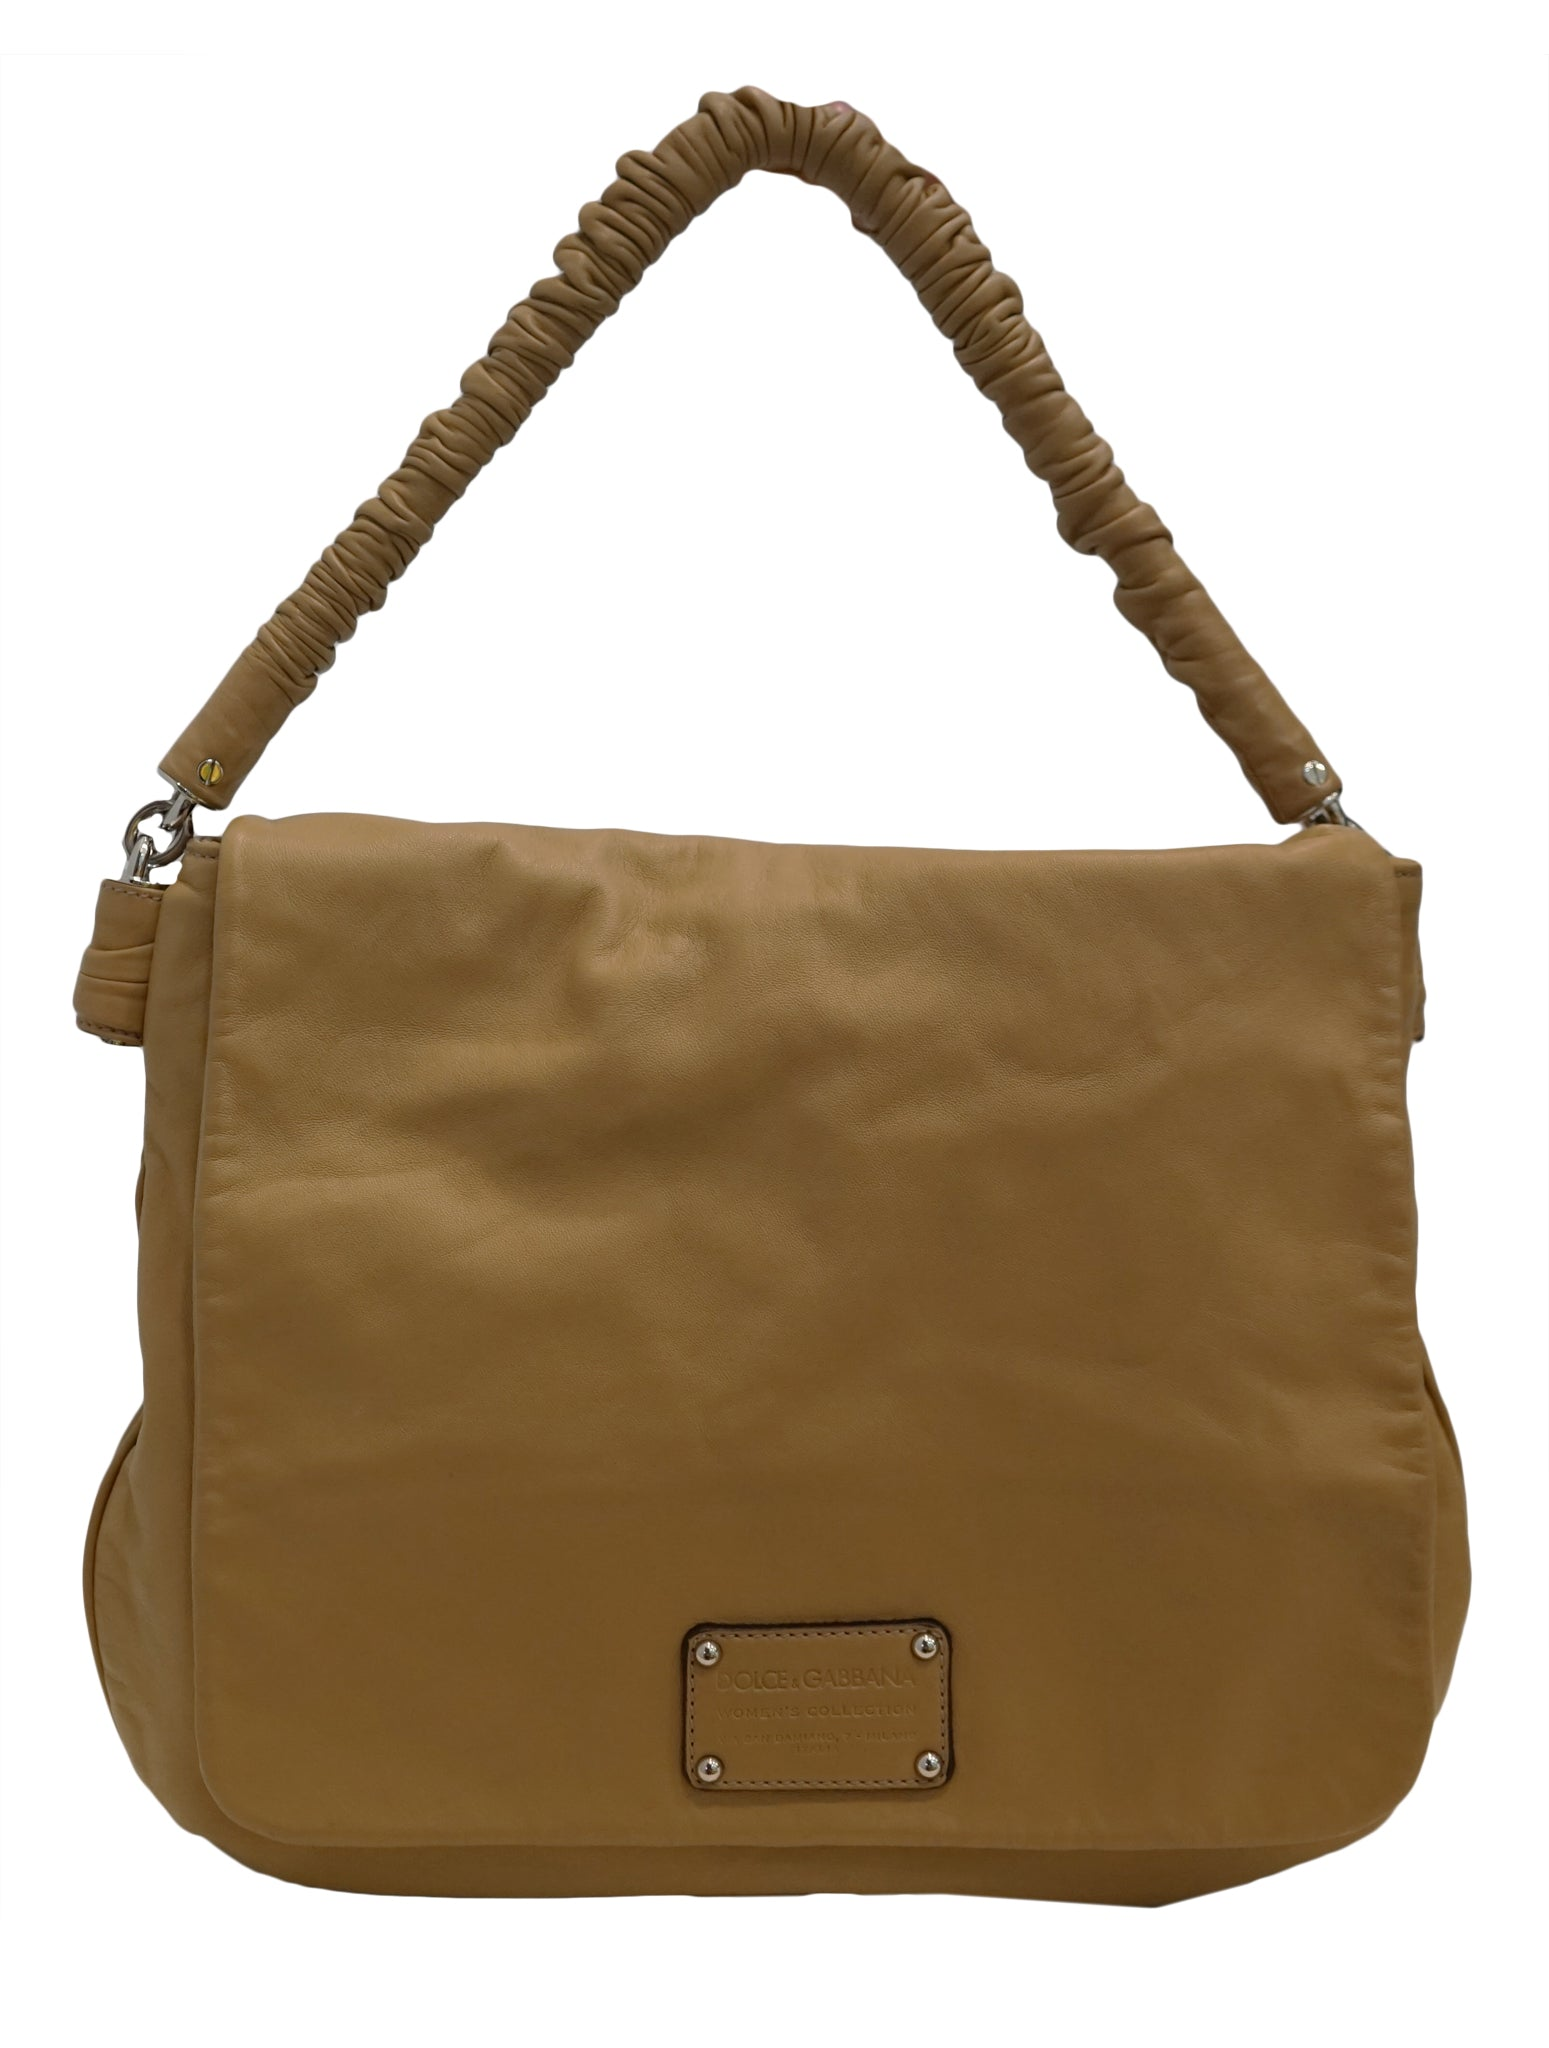 LEATHER MISS LEXINGTON SHOULDER BAG